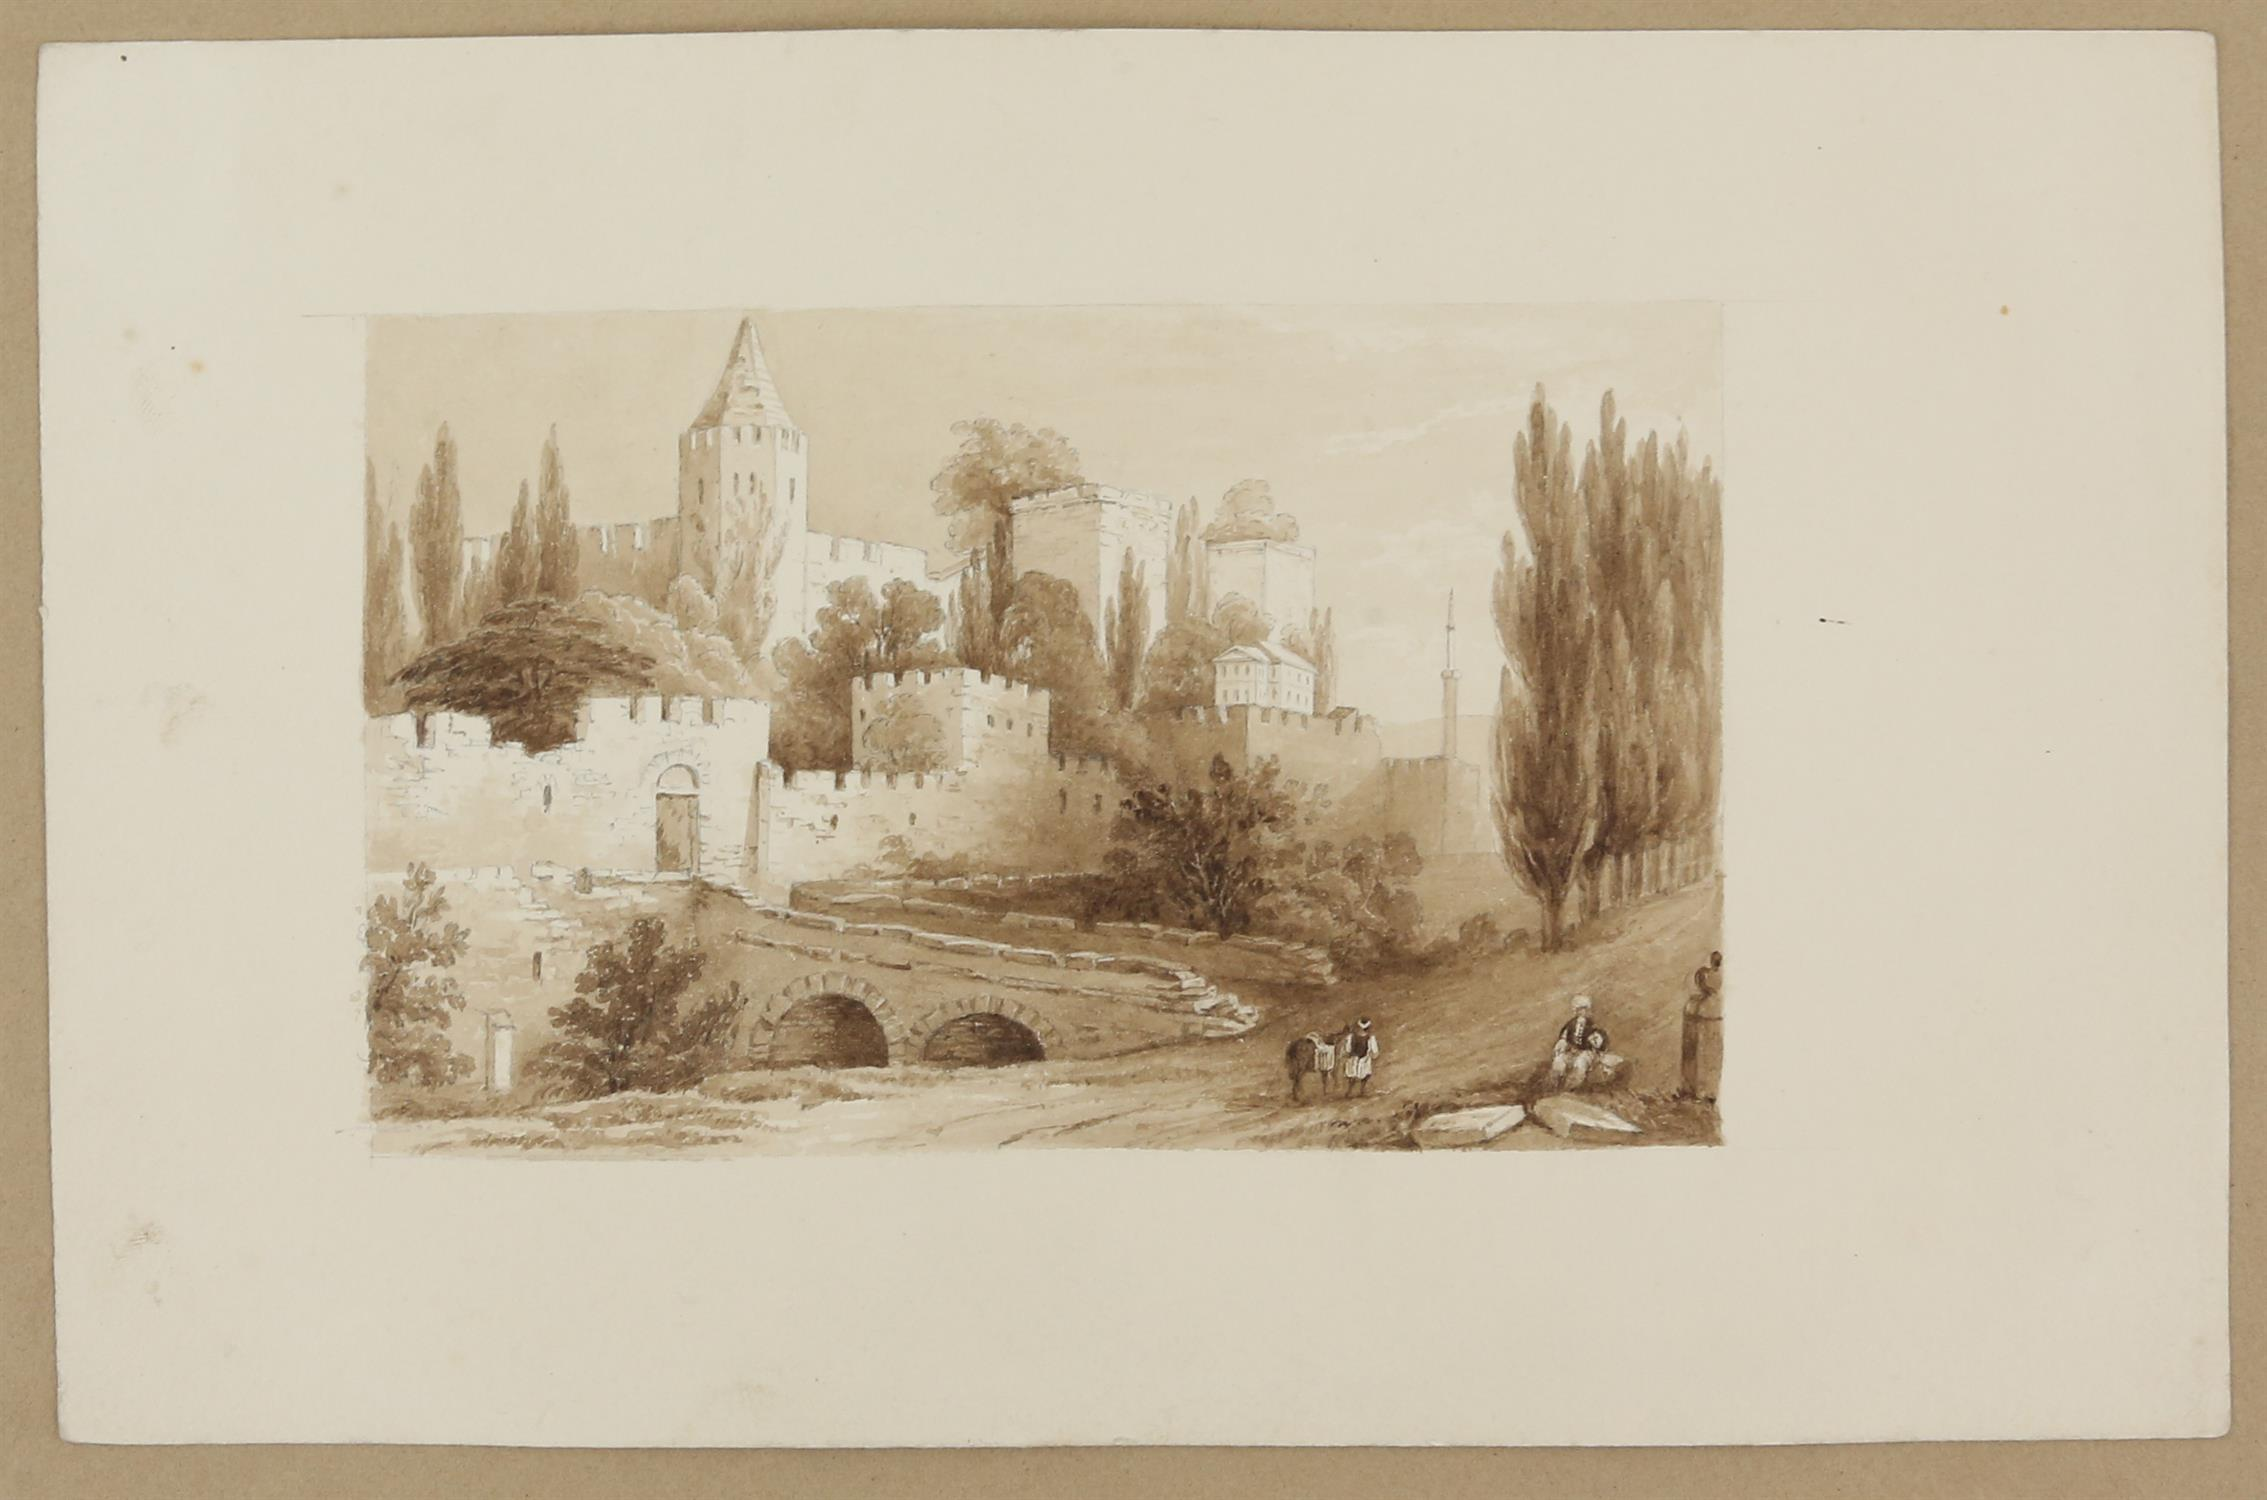 19th century scene with a castle and figures before the moat, sepia wash, 9.5cm x 15. - Image 3 of 8